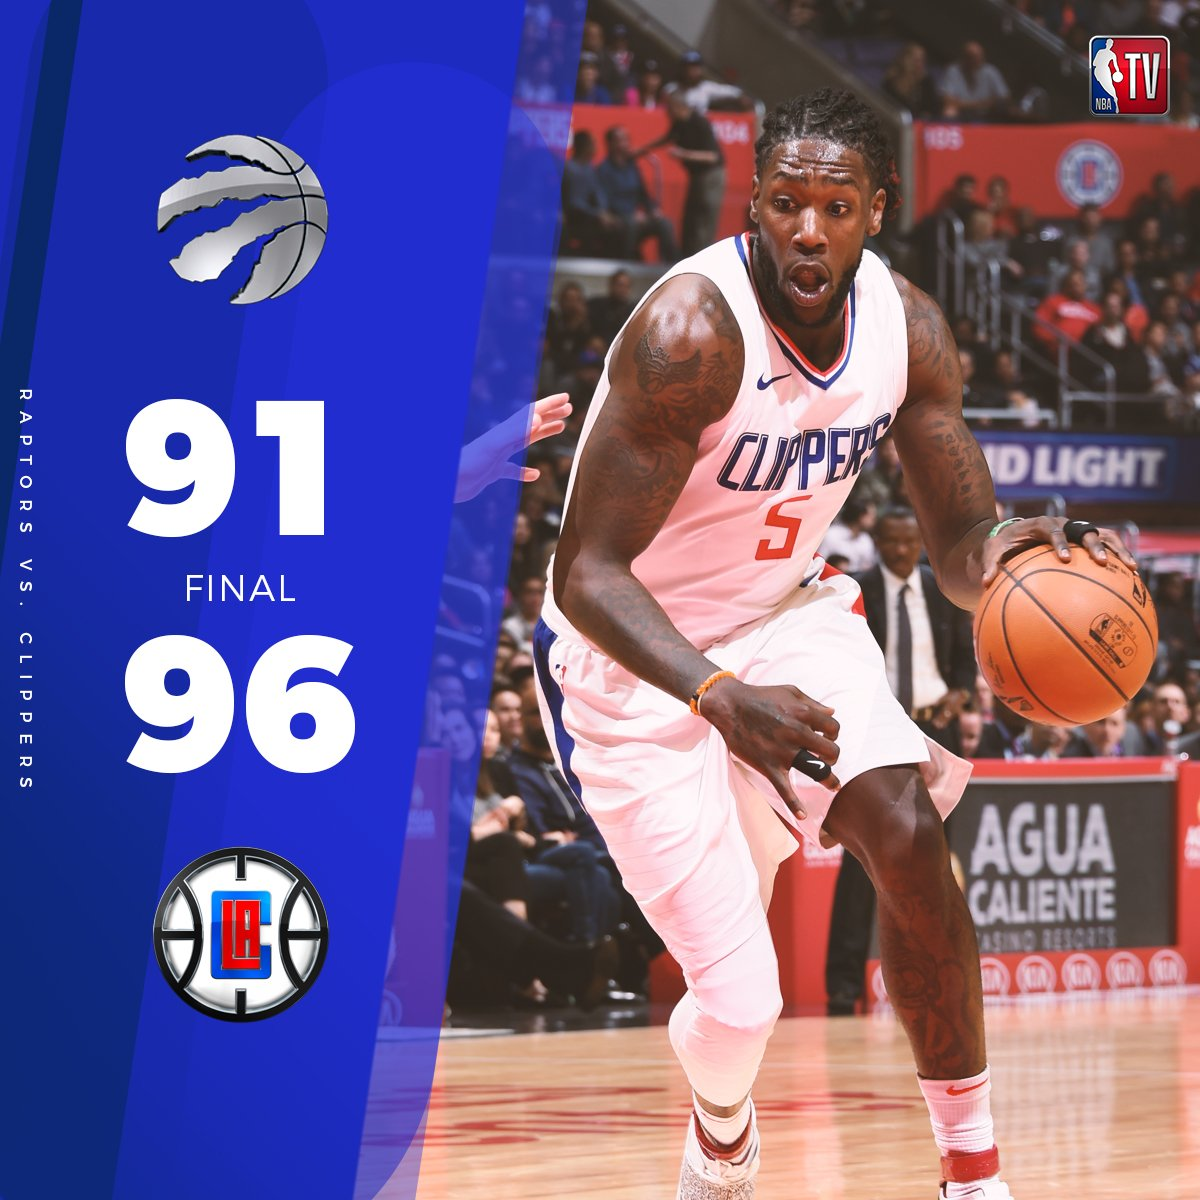 Montrezl Harrell (17p/4r) stepped up BIG for the @LAClippers as they held off the Raptors at home! https://t.co/XEOWnKJgO1